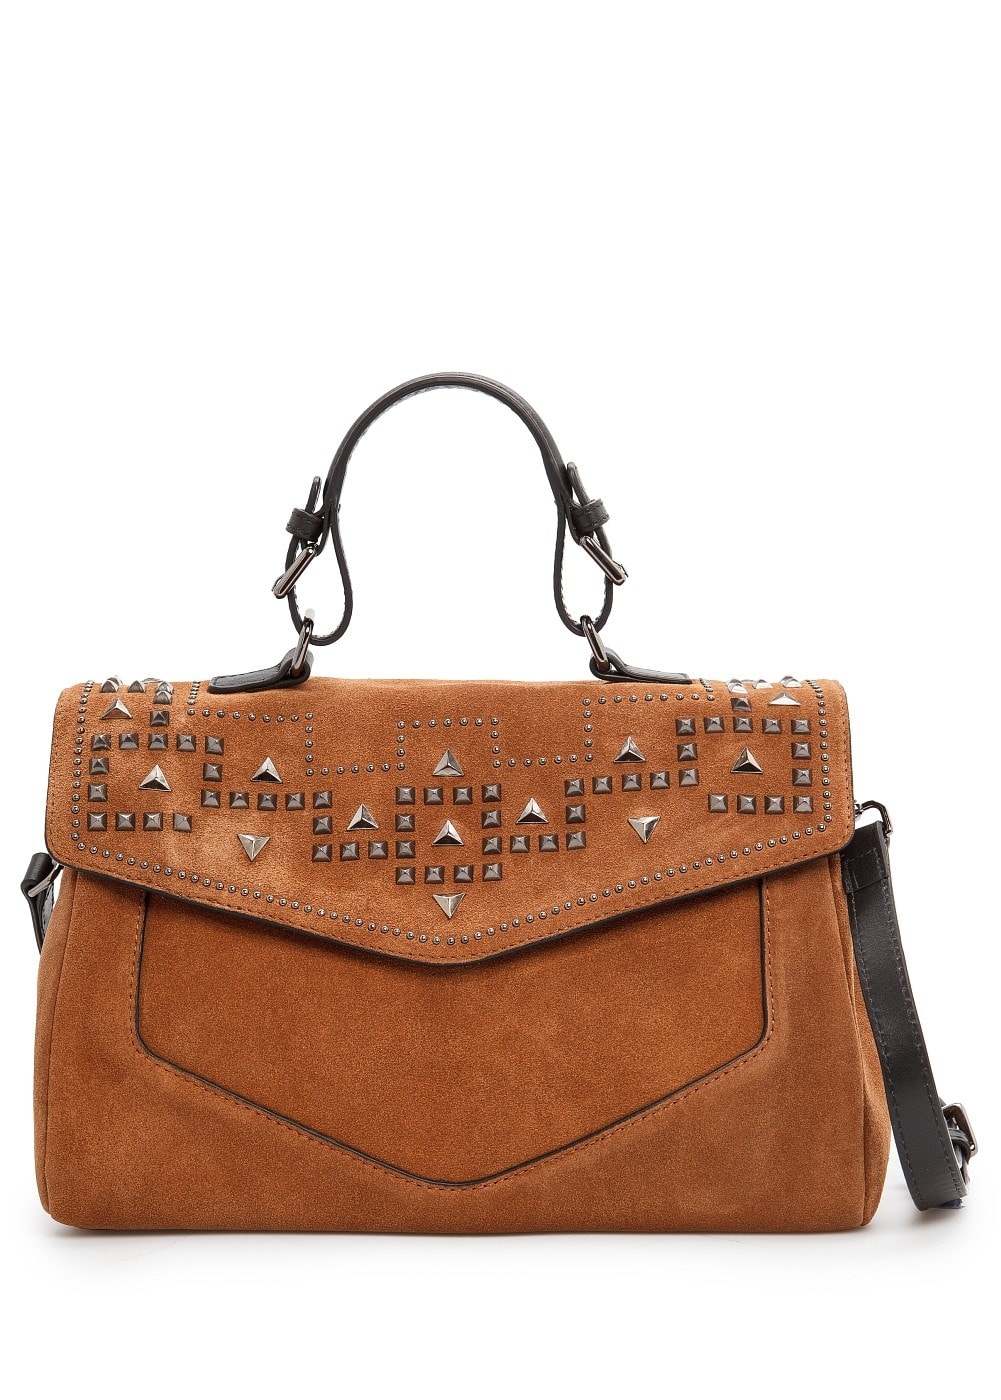 Studded suede tote bag